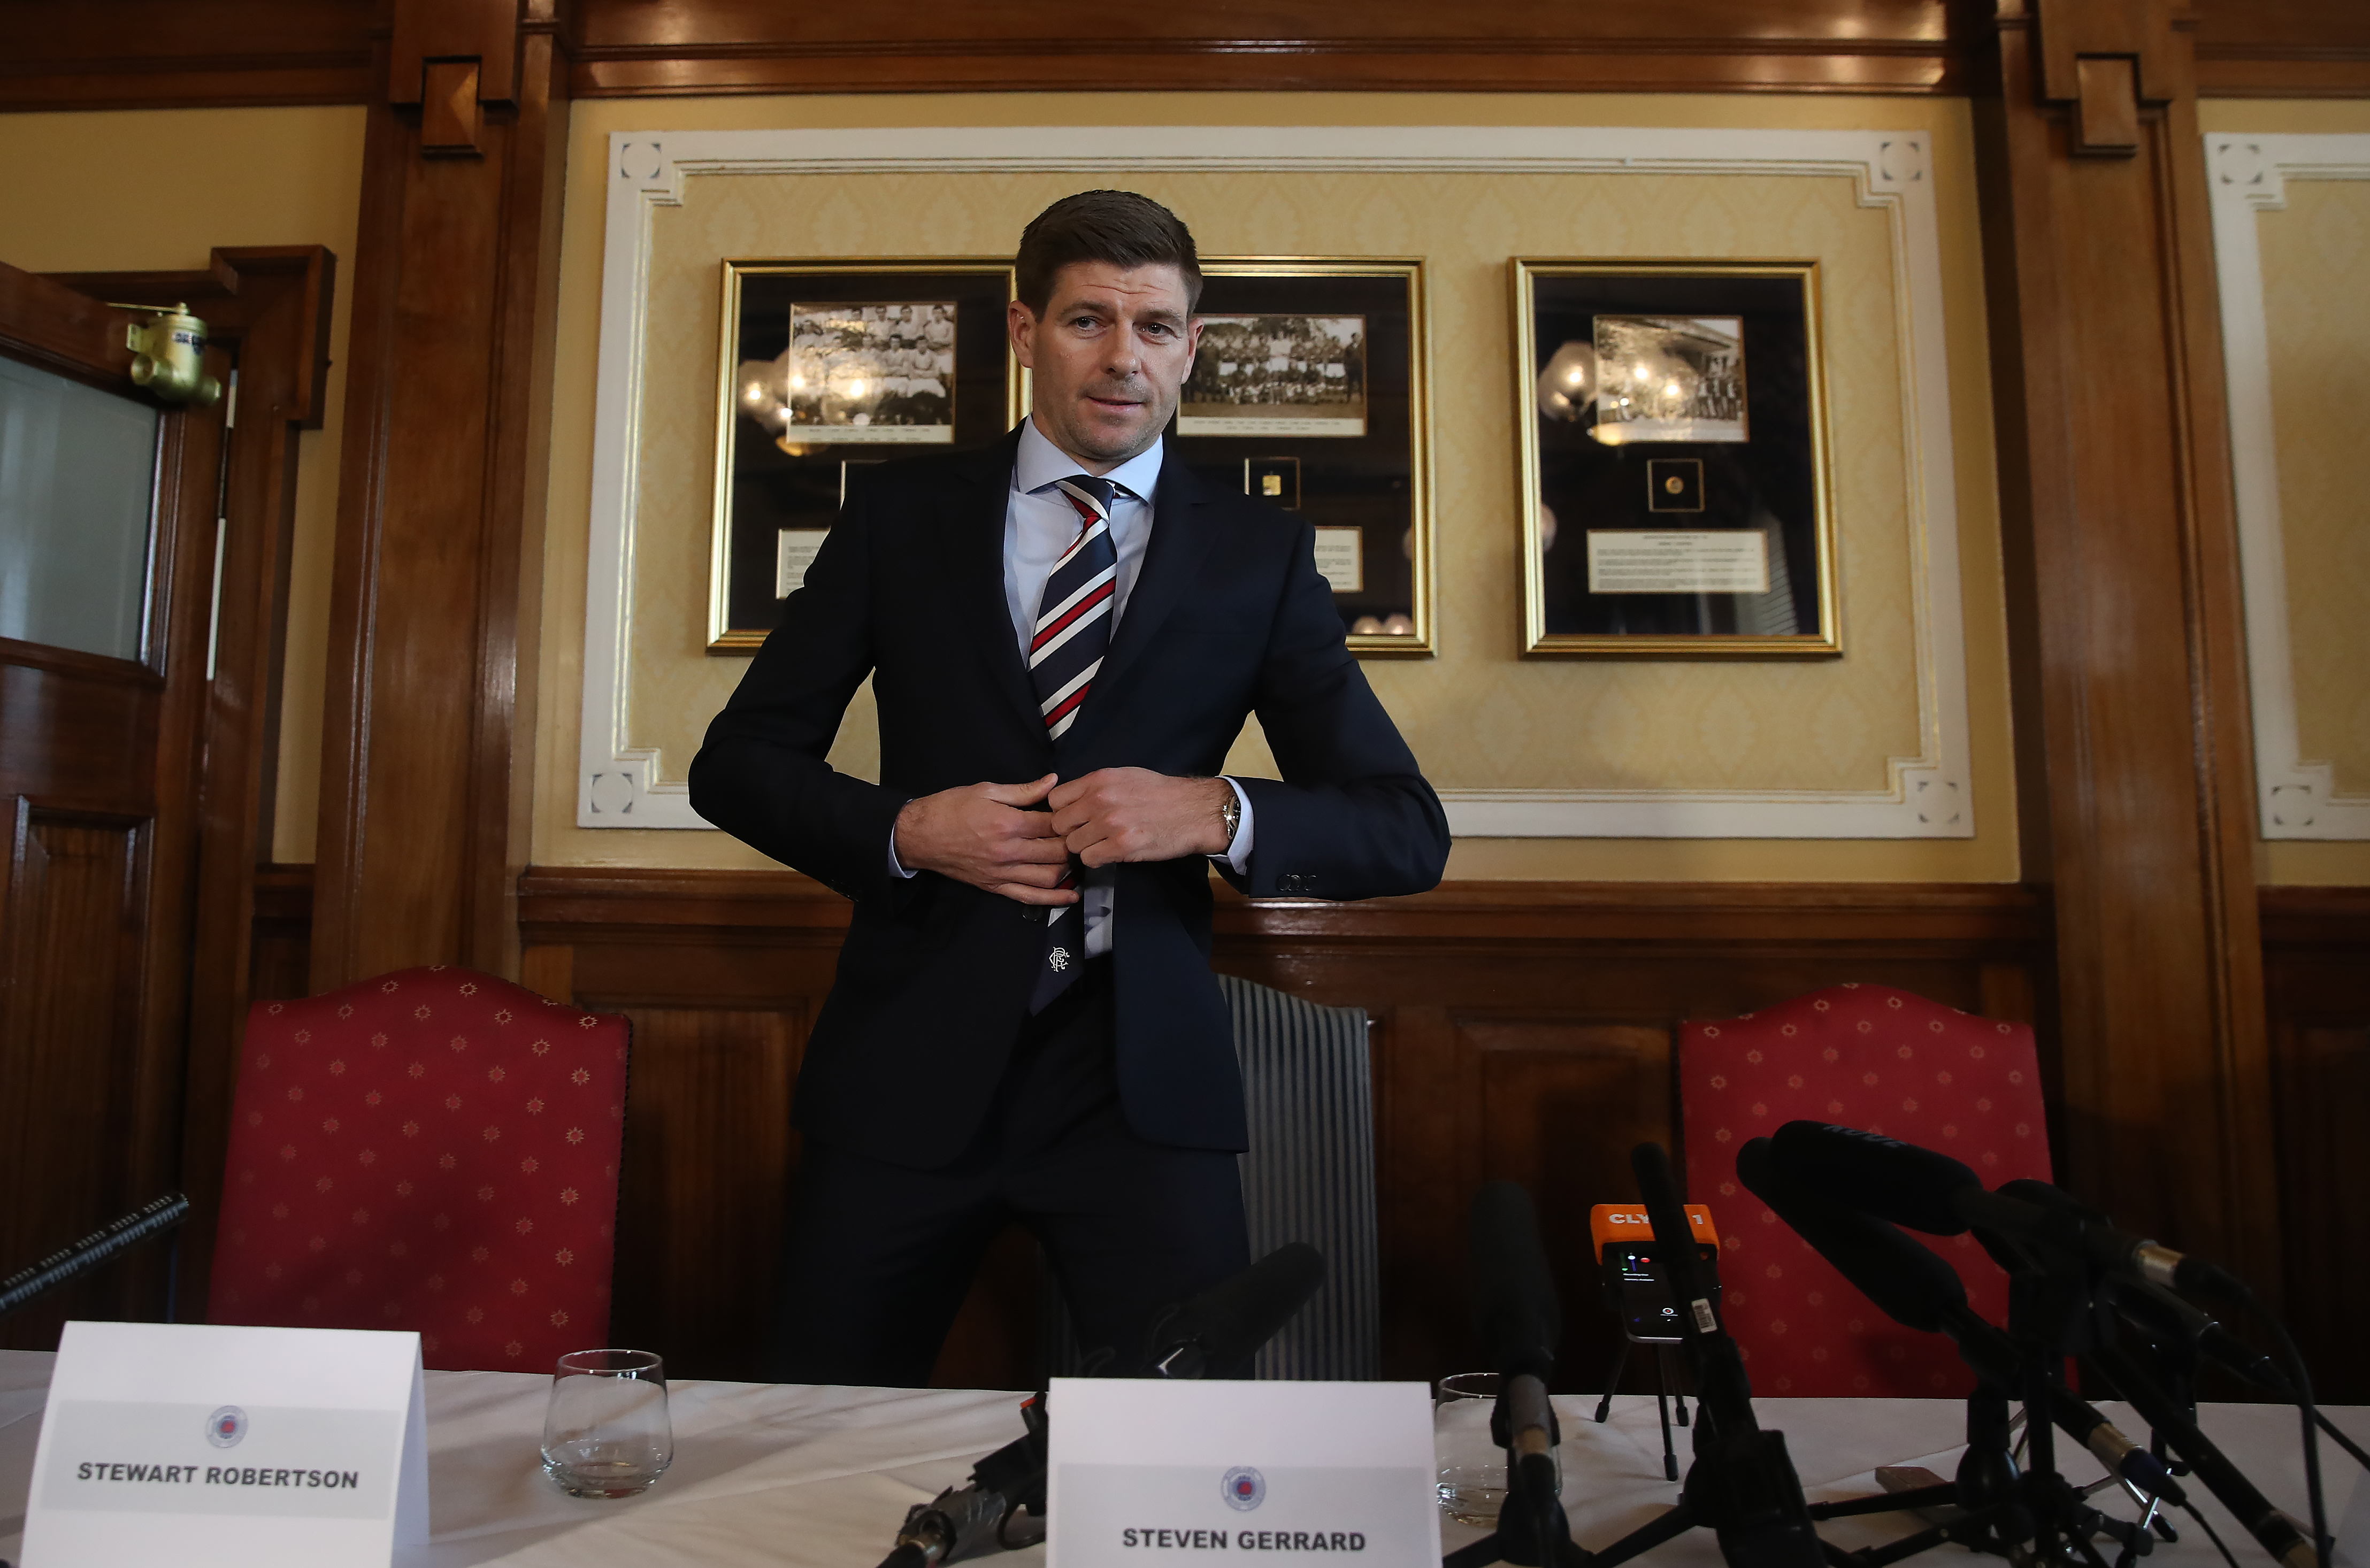 Steven Gerrard is Unveiled as the New Manager at Rangers